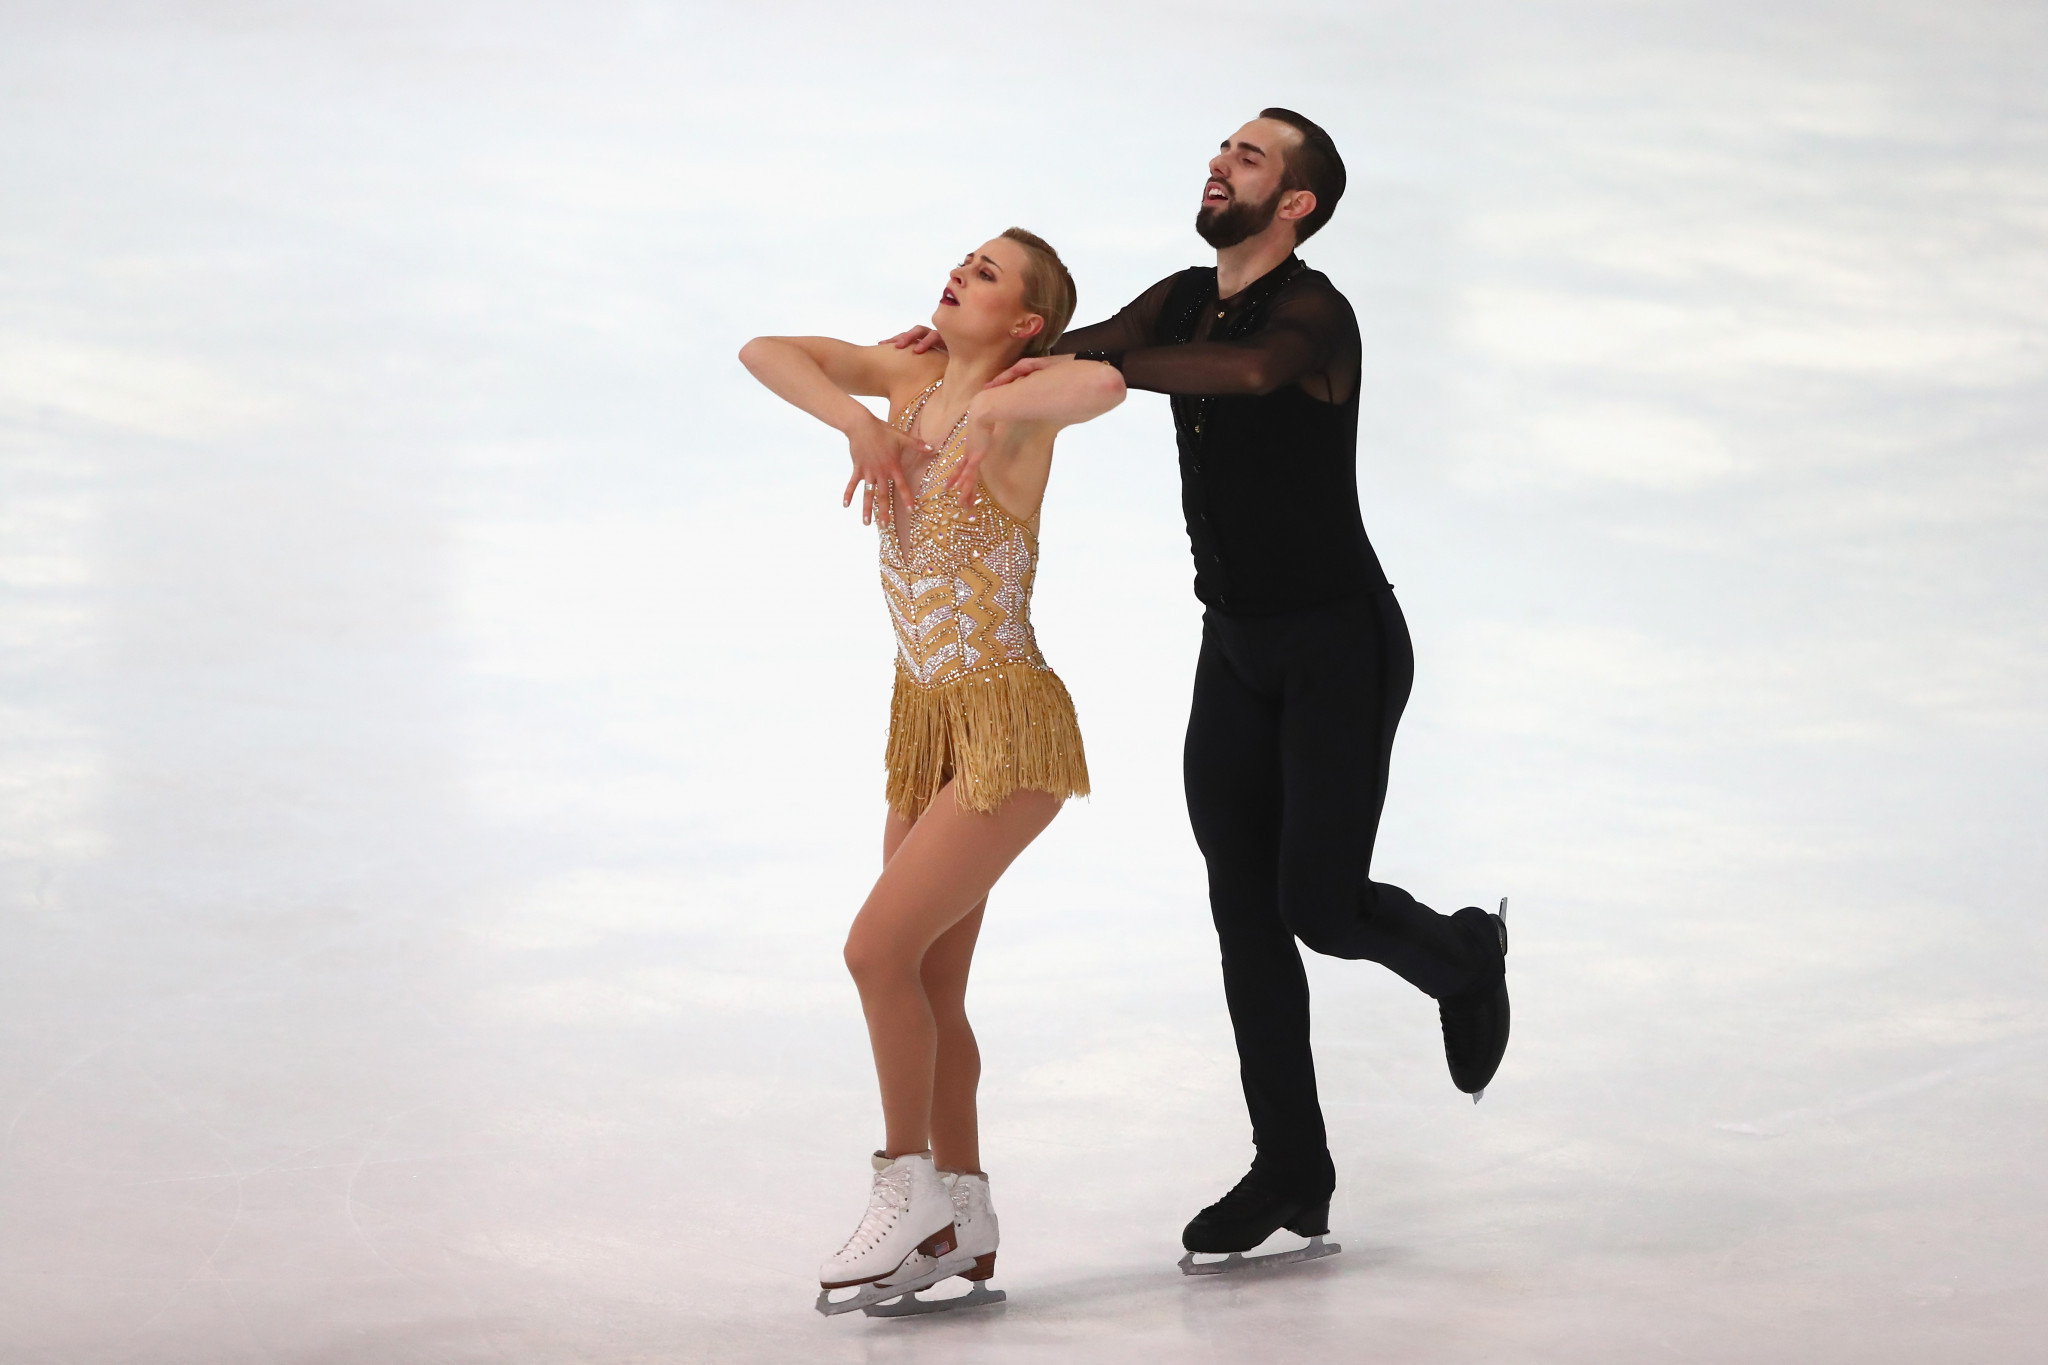 Skate America is set to take place in Lake Placid ©Getty Images